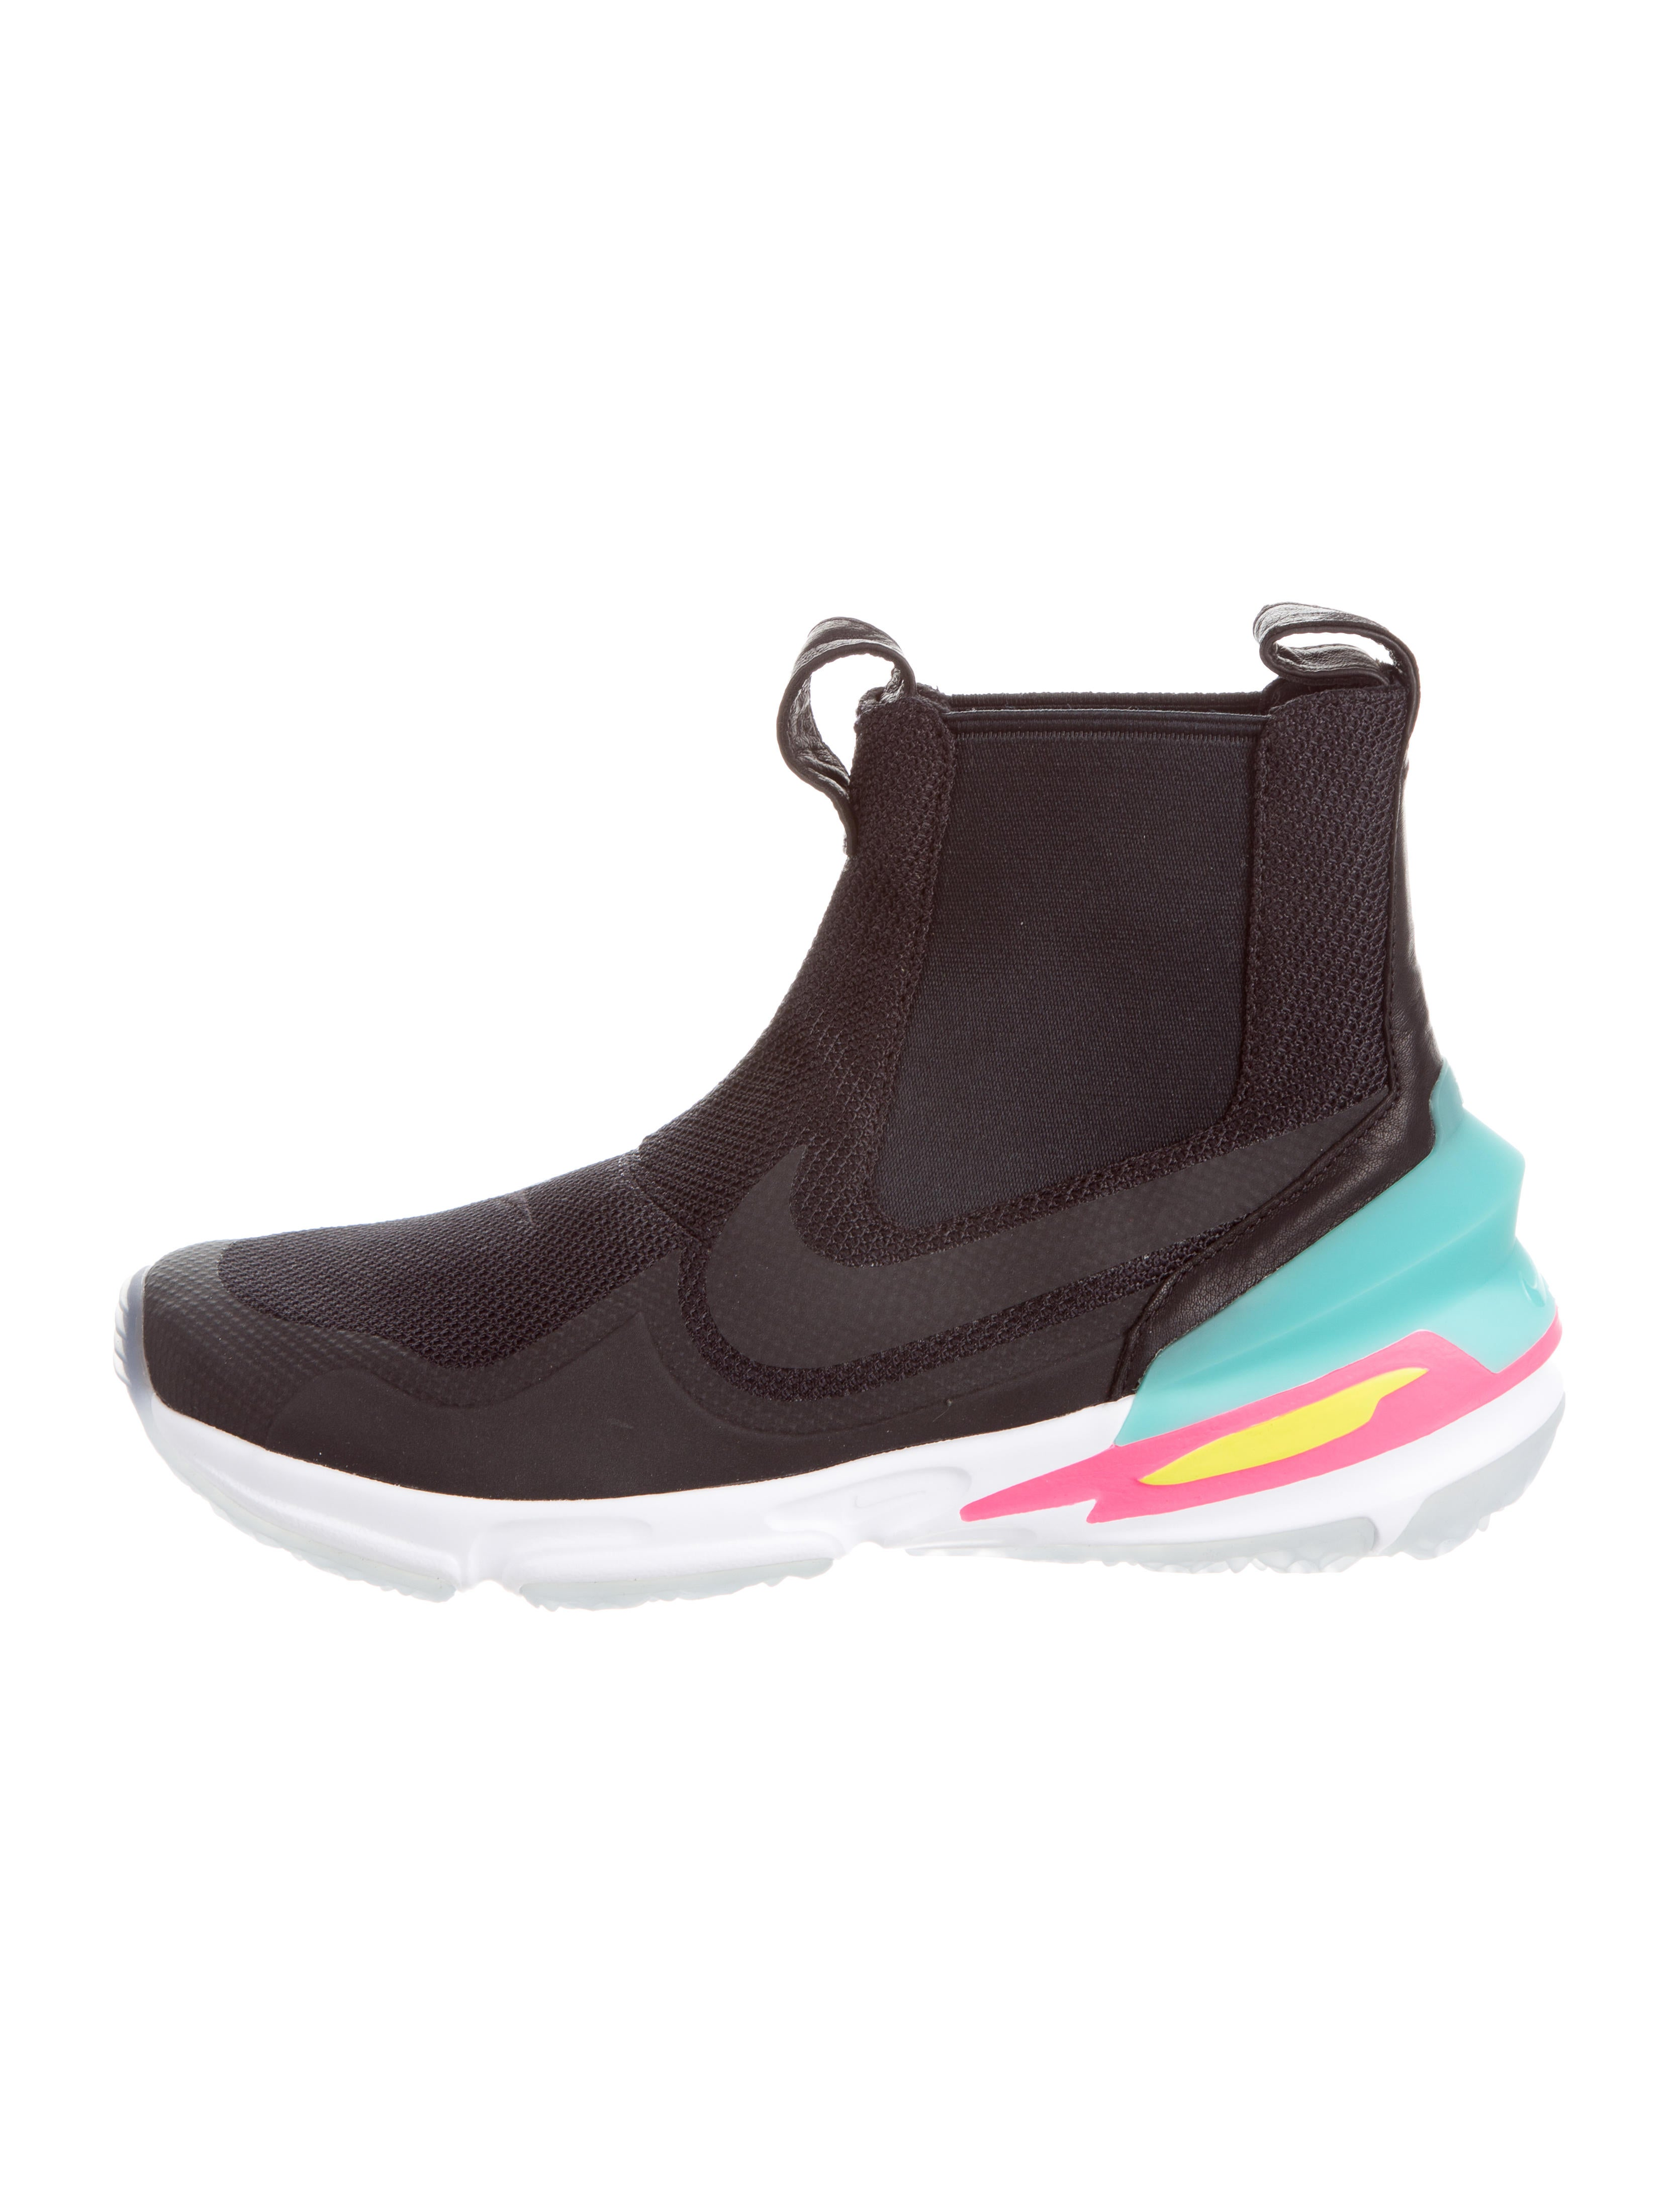 Air Zoom Legend RT Sneakers w/ Tags